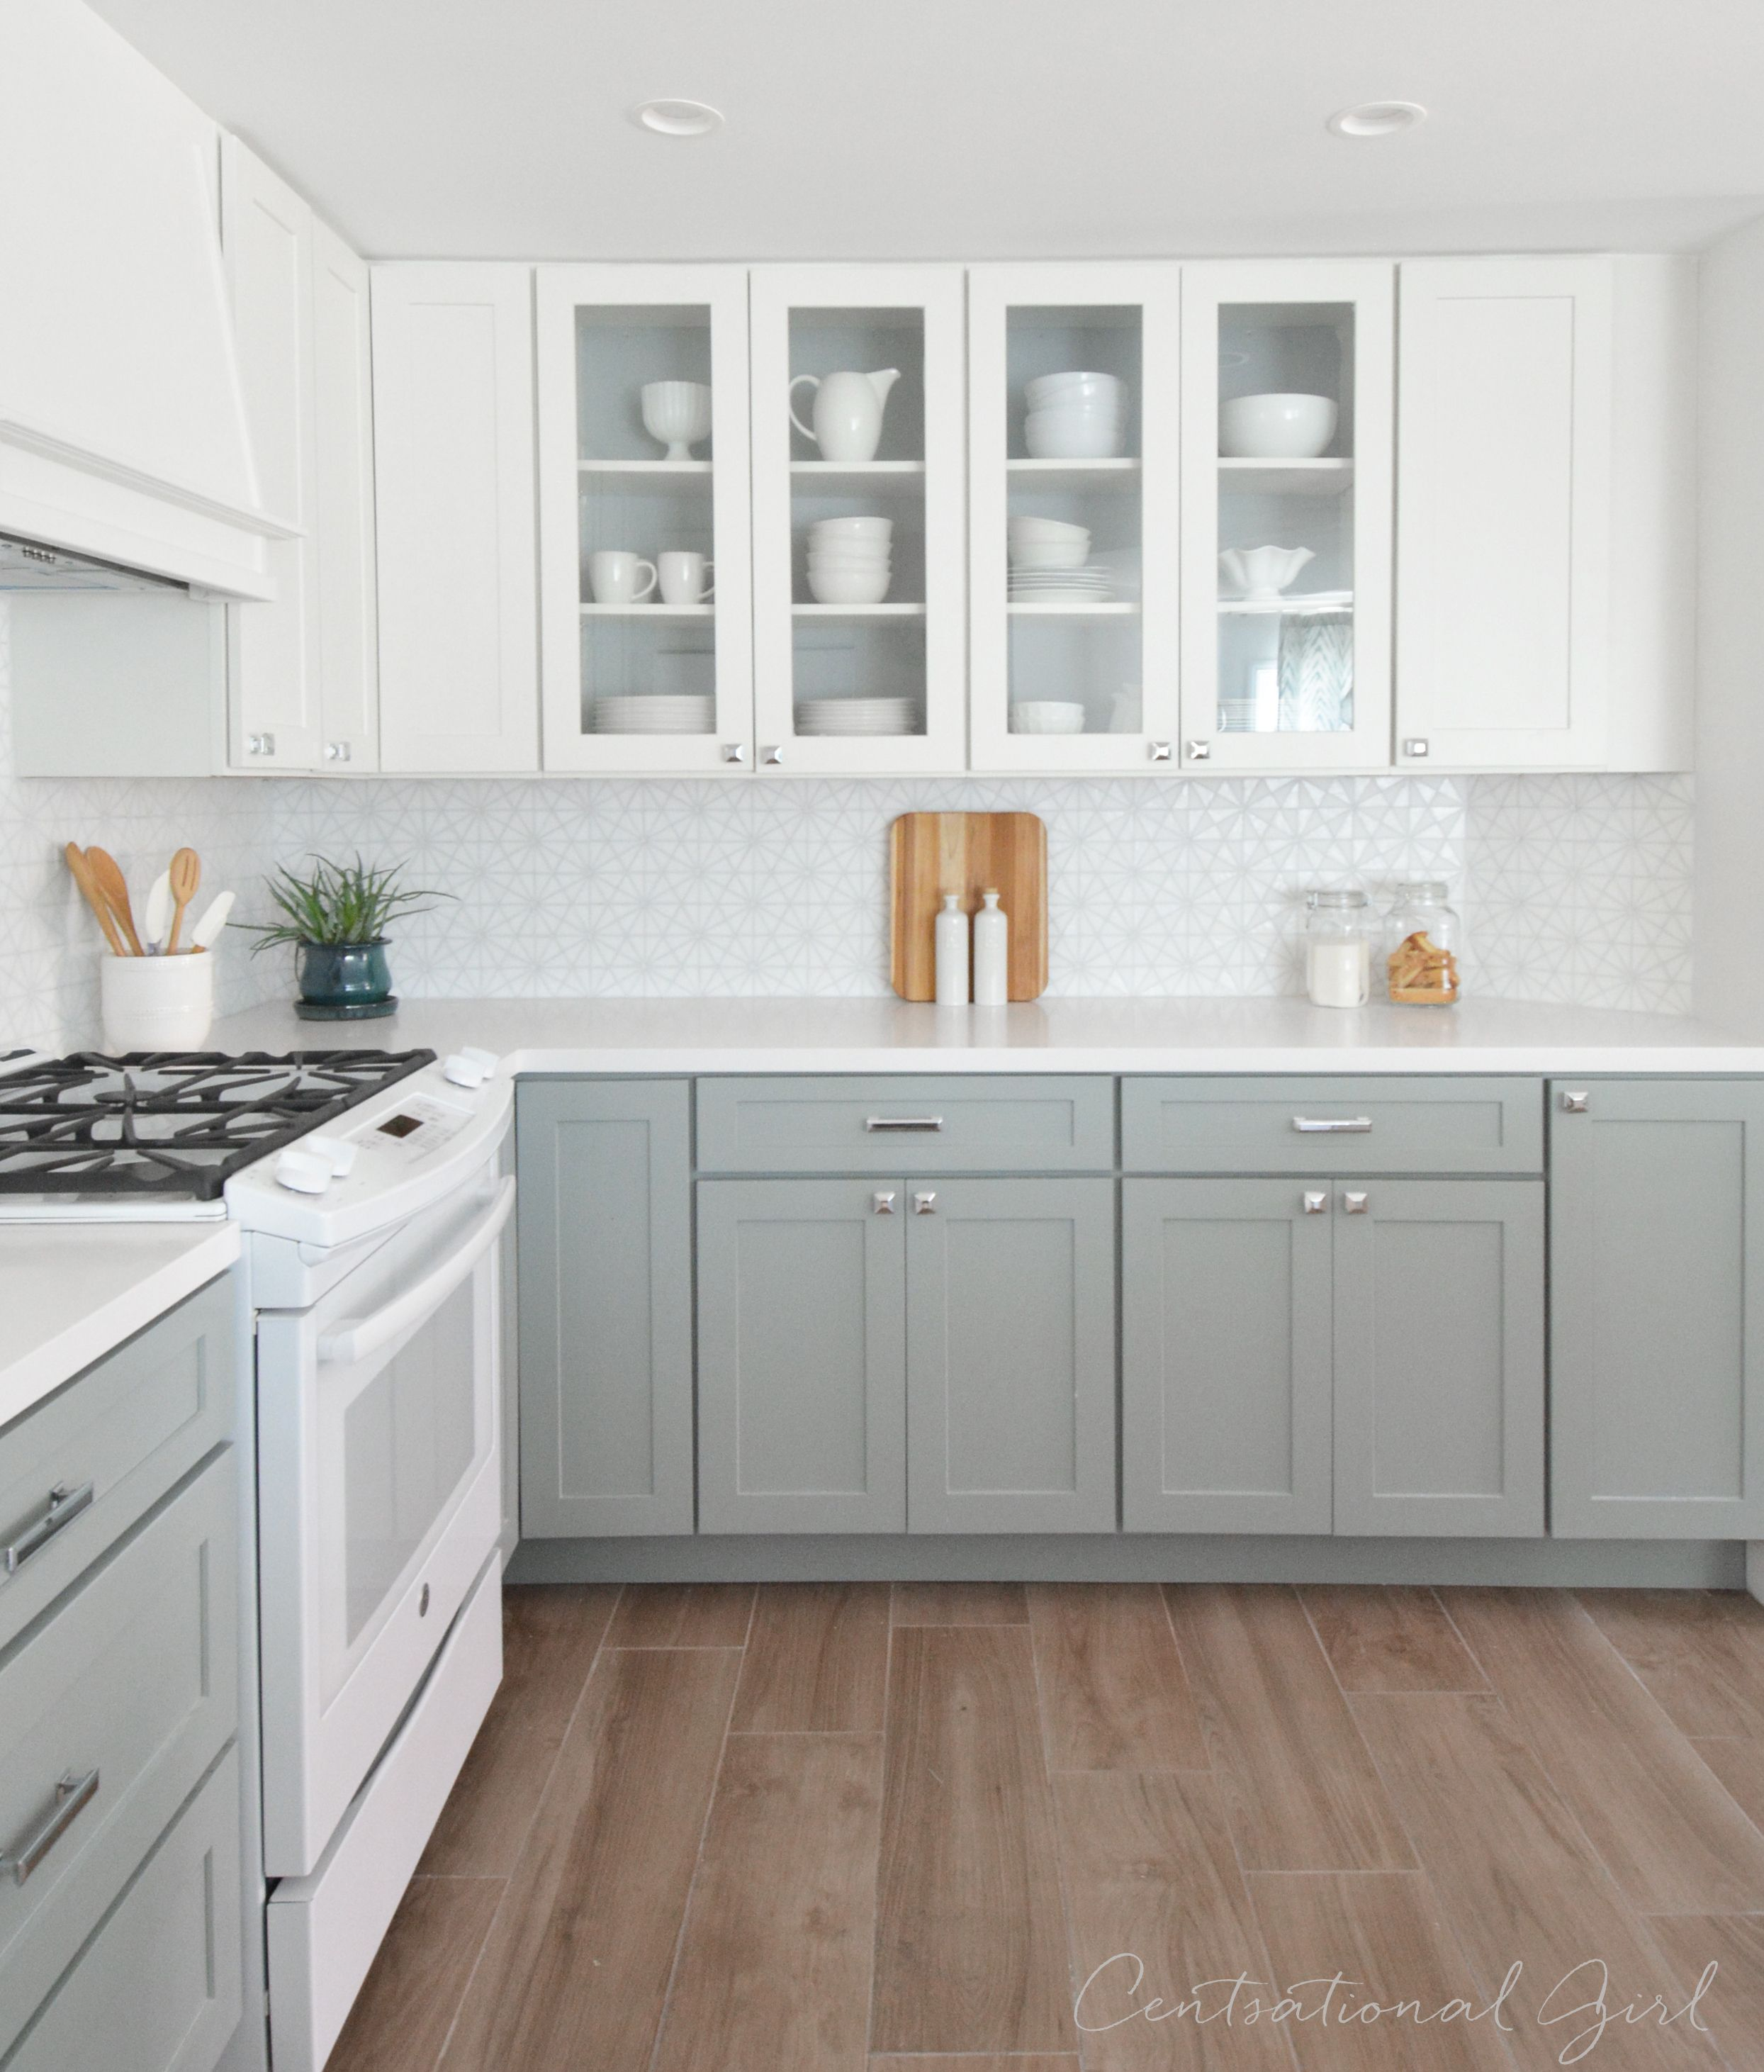 White and gray kitchen remodel want to travel the world for cheap